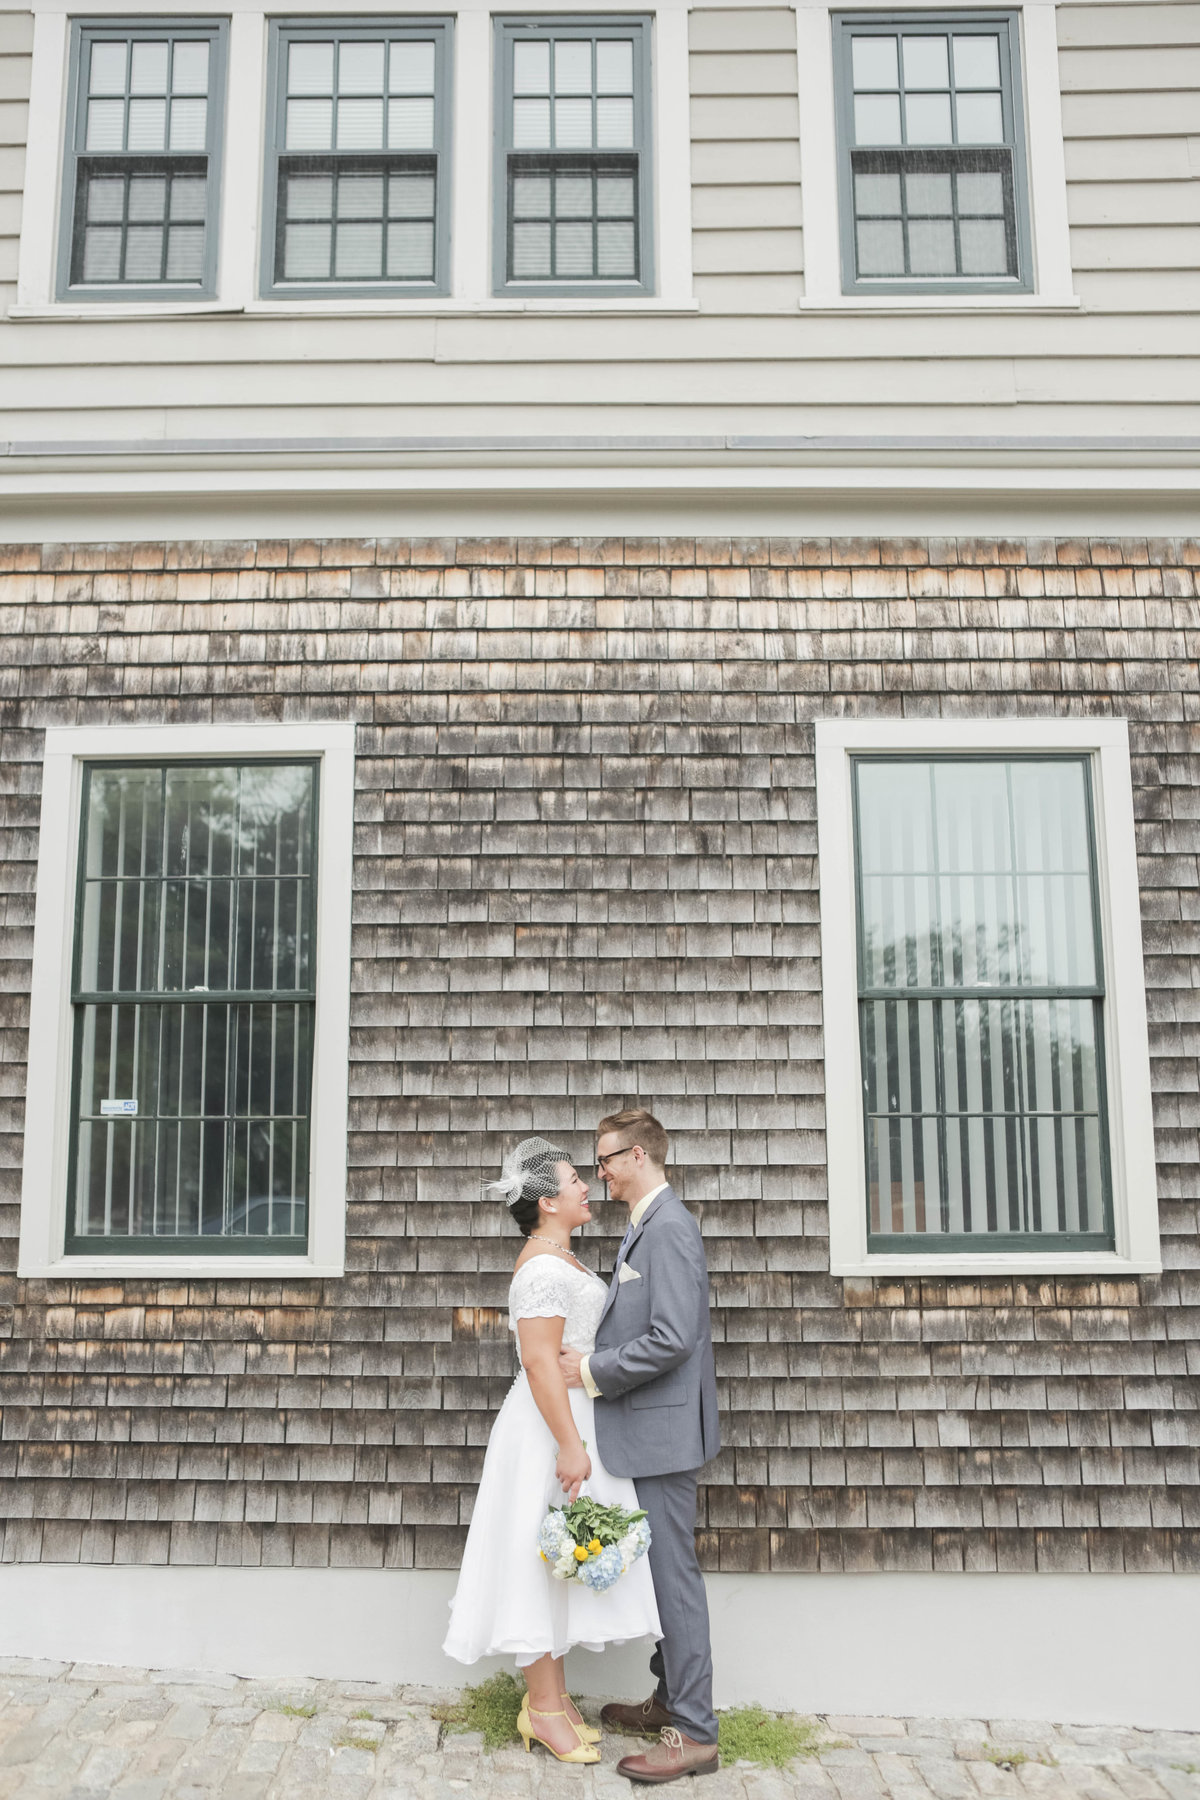 new_bedford_whaling_museum_wedding_boston_wedding_photographerGideon3month20150822ir-4O6A9994171054